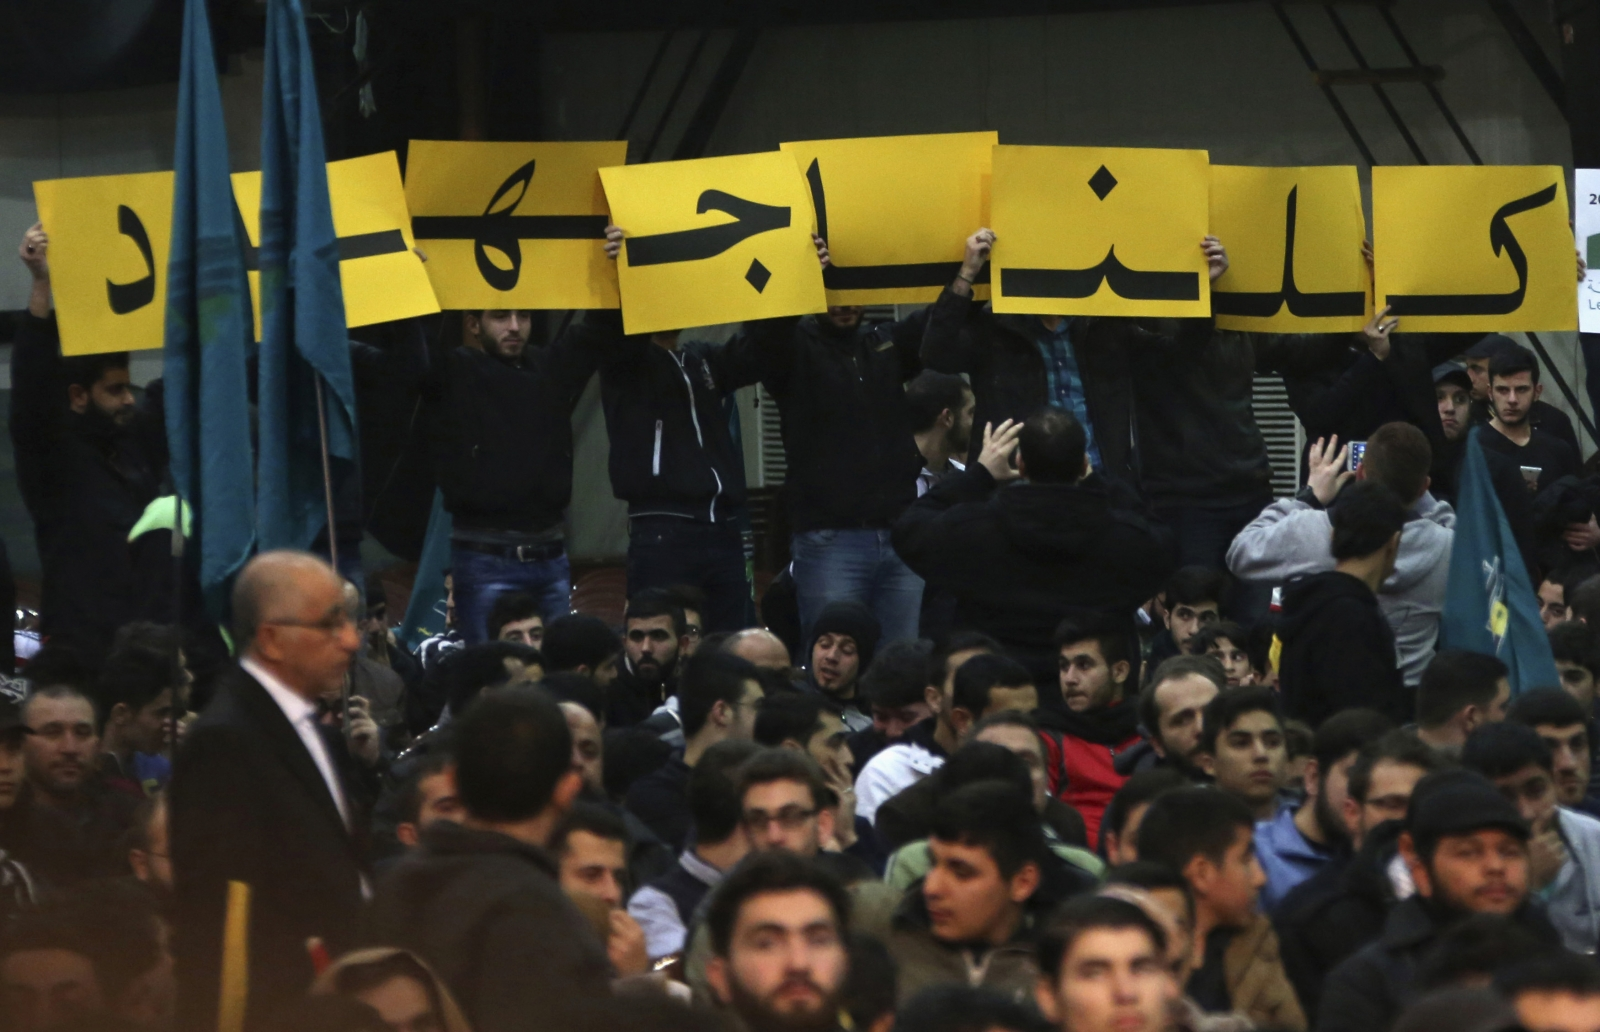 Supporters of Lebanon's Hezbollah leader Sayyed Hassan Nasrallah hold up placards during a rally